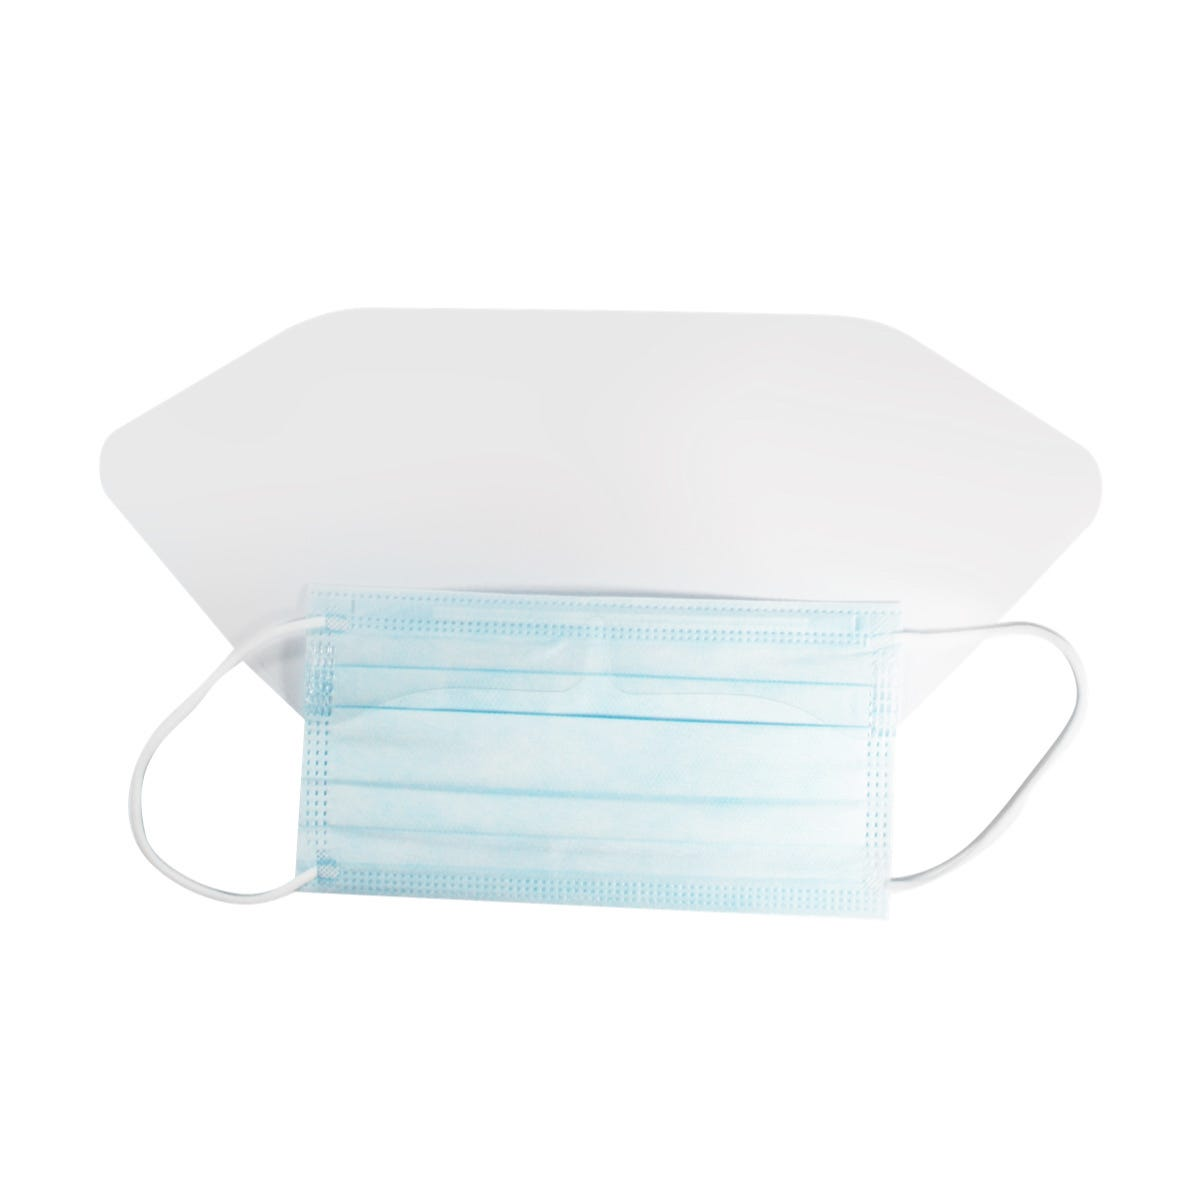 Surgical Mask with Eye Shield, 25/case